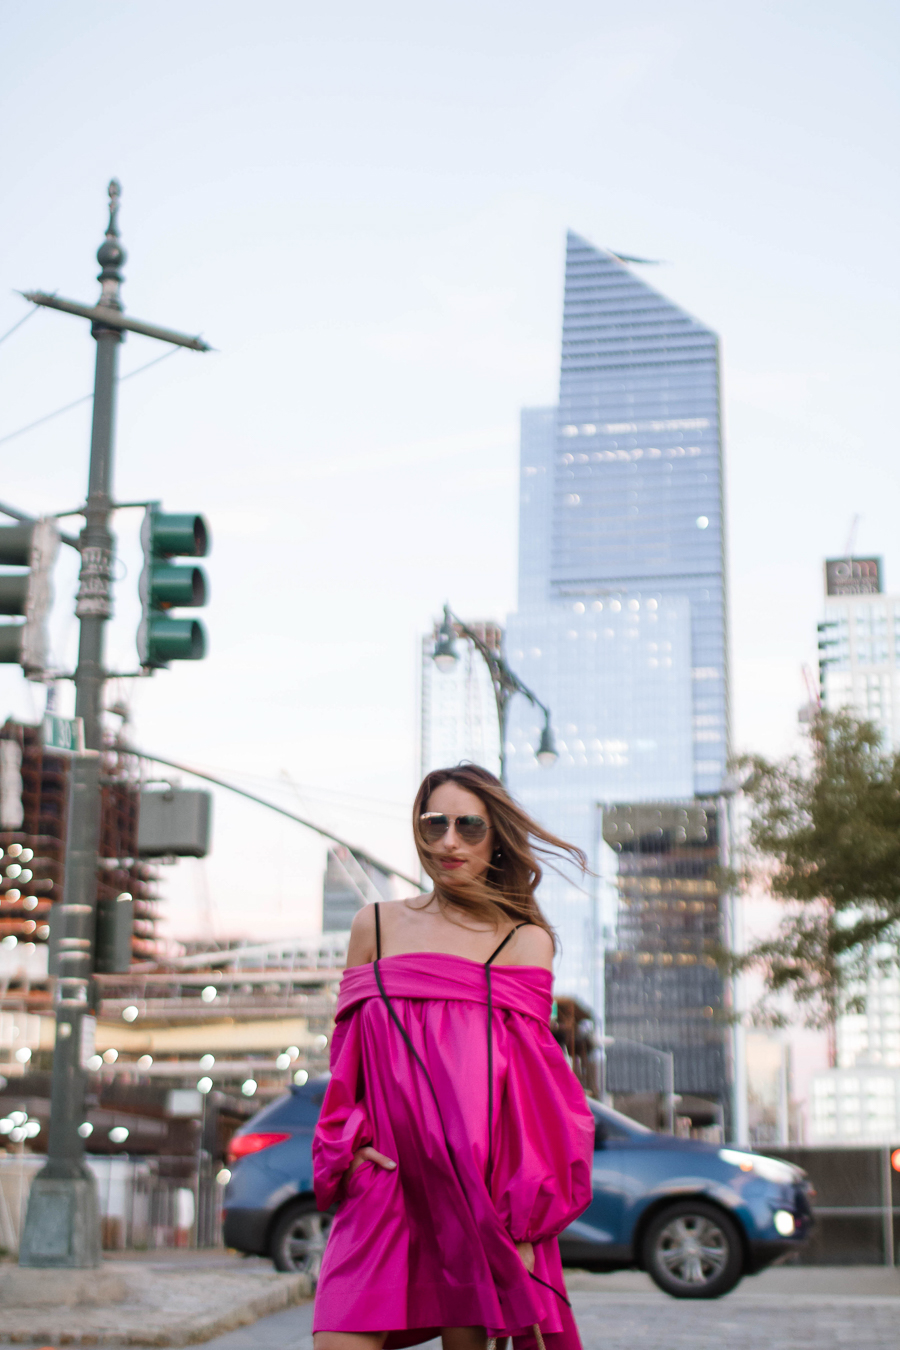 sabrina-chakici-clutch-and-carry-on-clutch-carry-on-uk-travel-blogger-nyfw-isa-arfen-pink-ress-gucci-silver-shoes-net-a-porter-helicopter-7